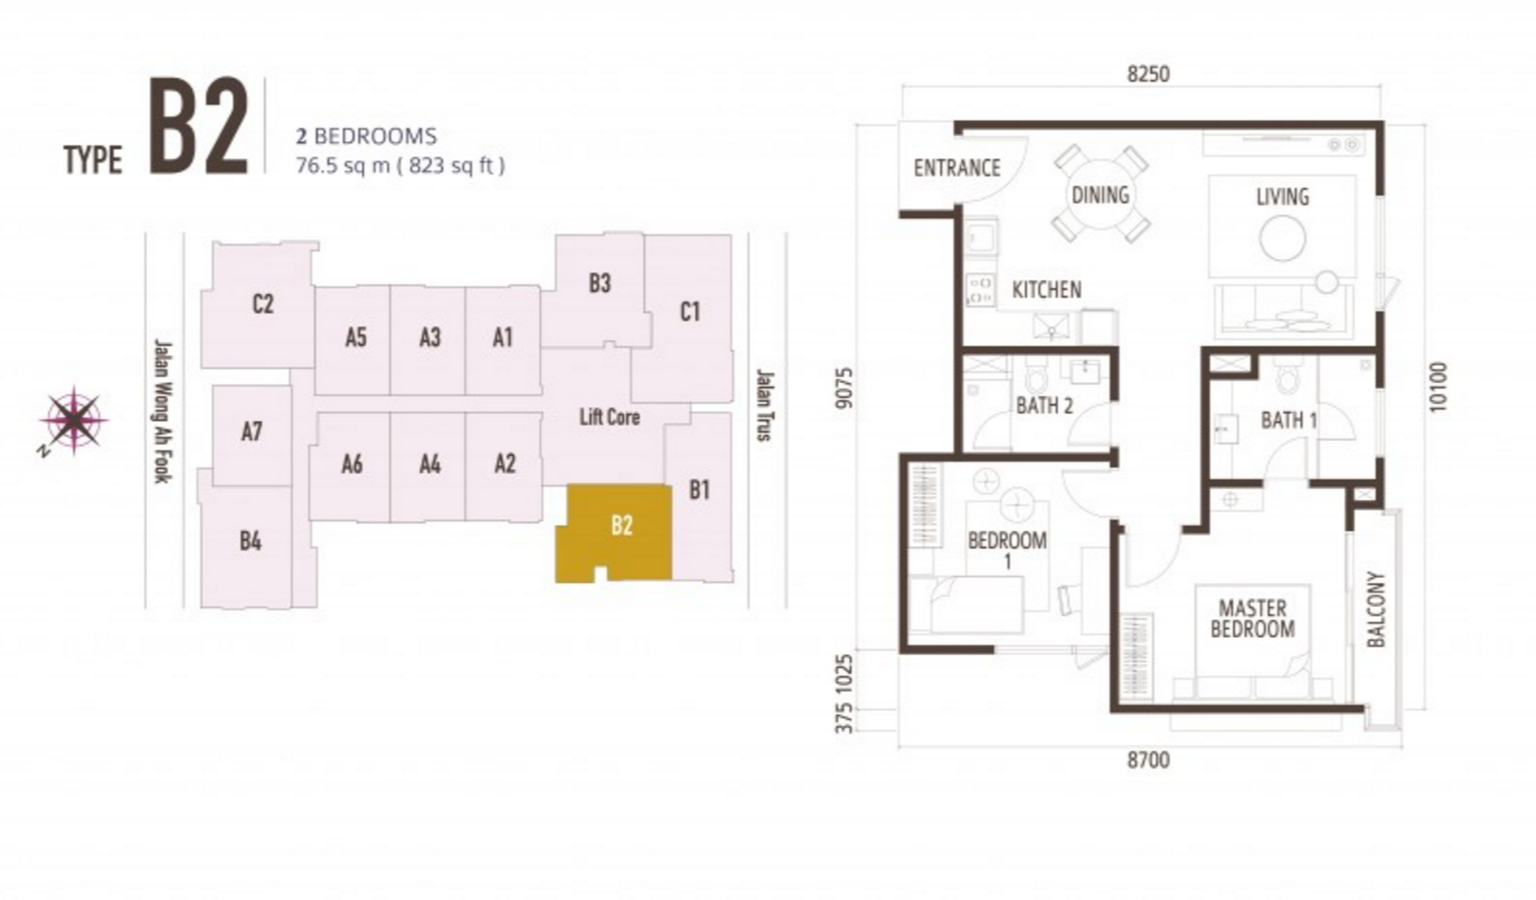 FloorPlan 2 Bedroom Type B2